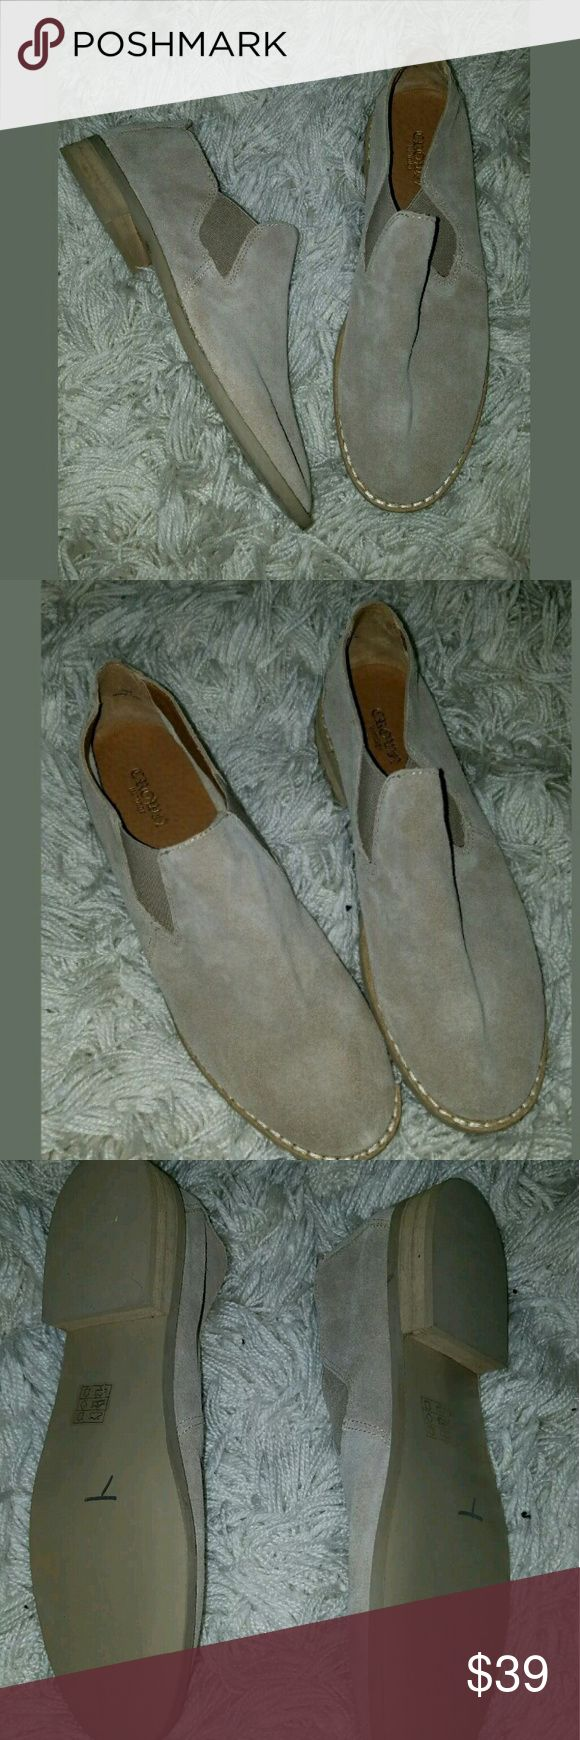 Crown Vintage Ankle Yankee Slip-On Tan Brown Suede Crown Vintage Ankle Yankee Slip-On Tan Brown Suede Loafer Flat Shoes 8.5  New without box.   LB Crown Vintage Shoes Flats & Loafers